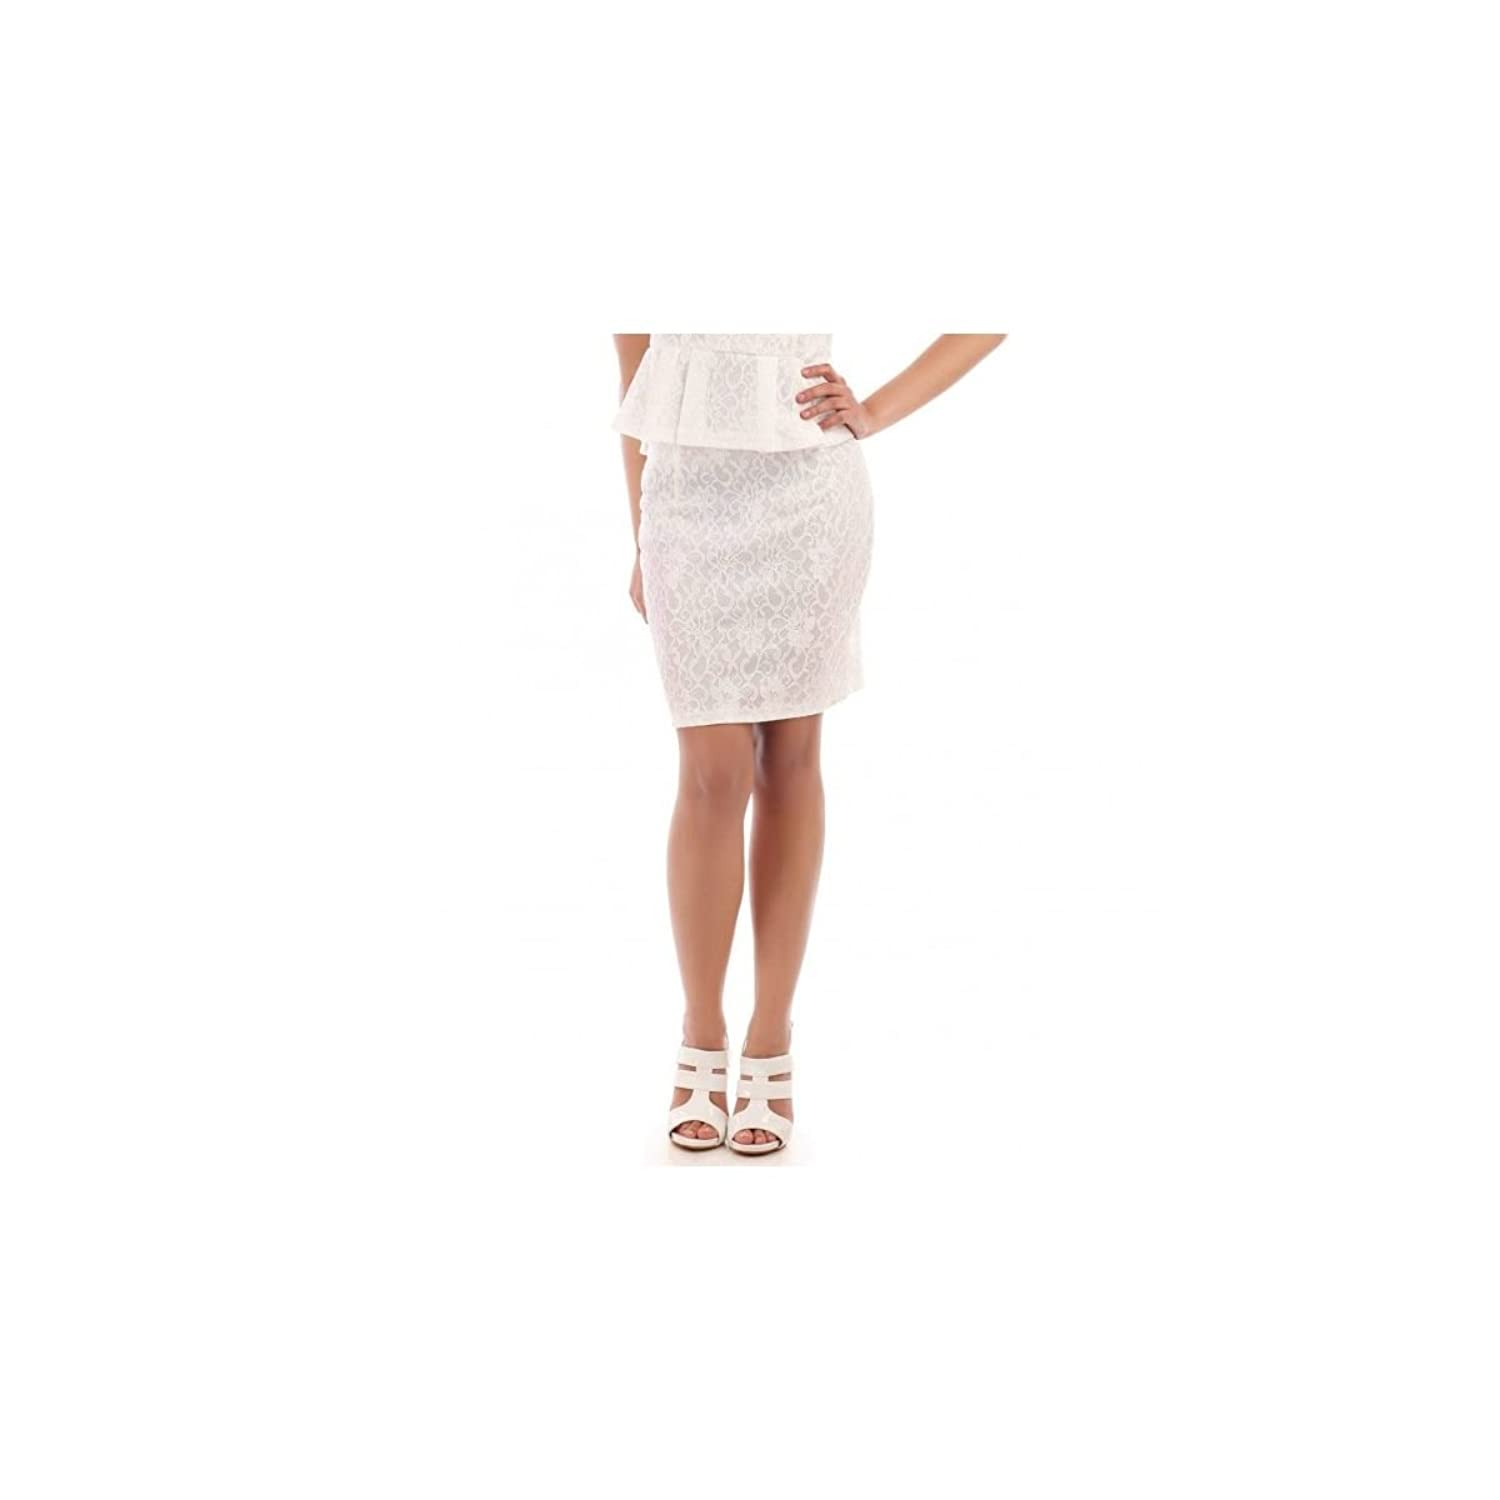 La Modeuse?-?Figure-Hugging Lace Skirt With Zip At The Back